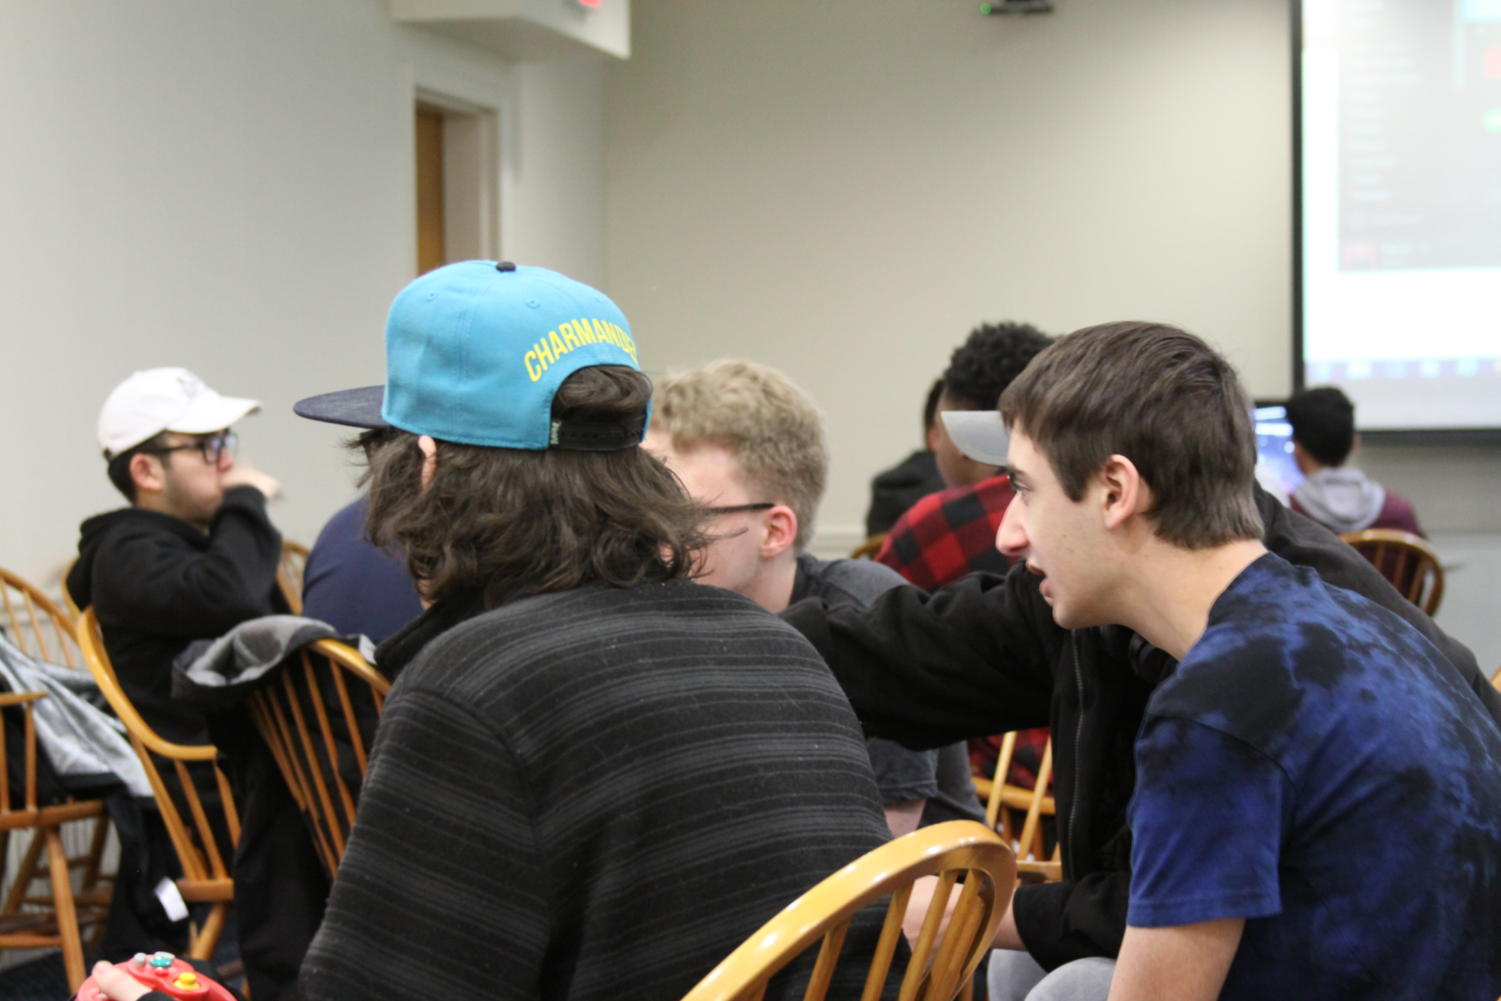 Students at game night. Photo by Jack Fozard